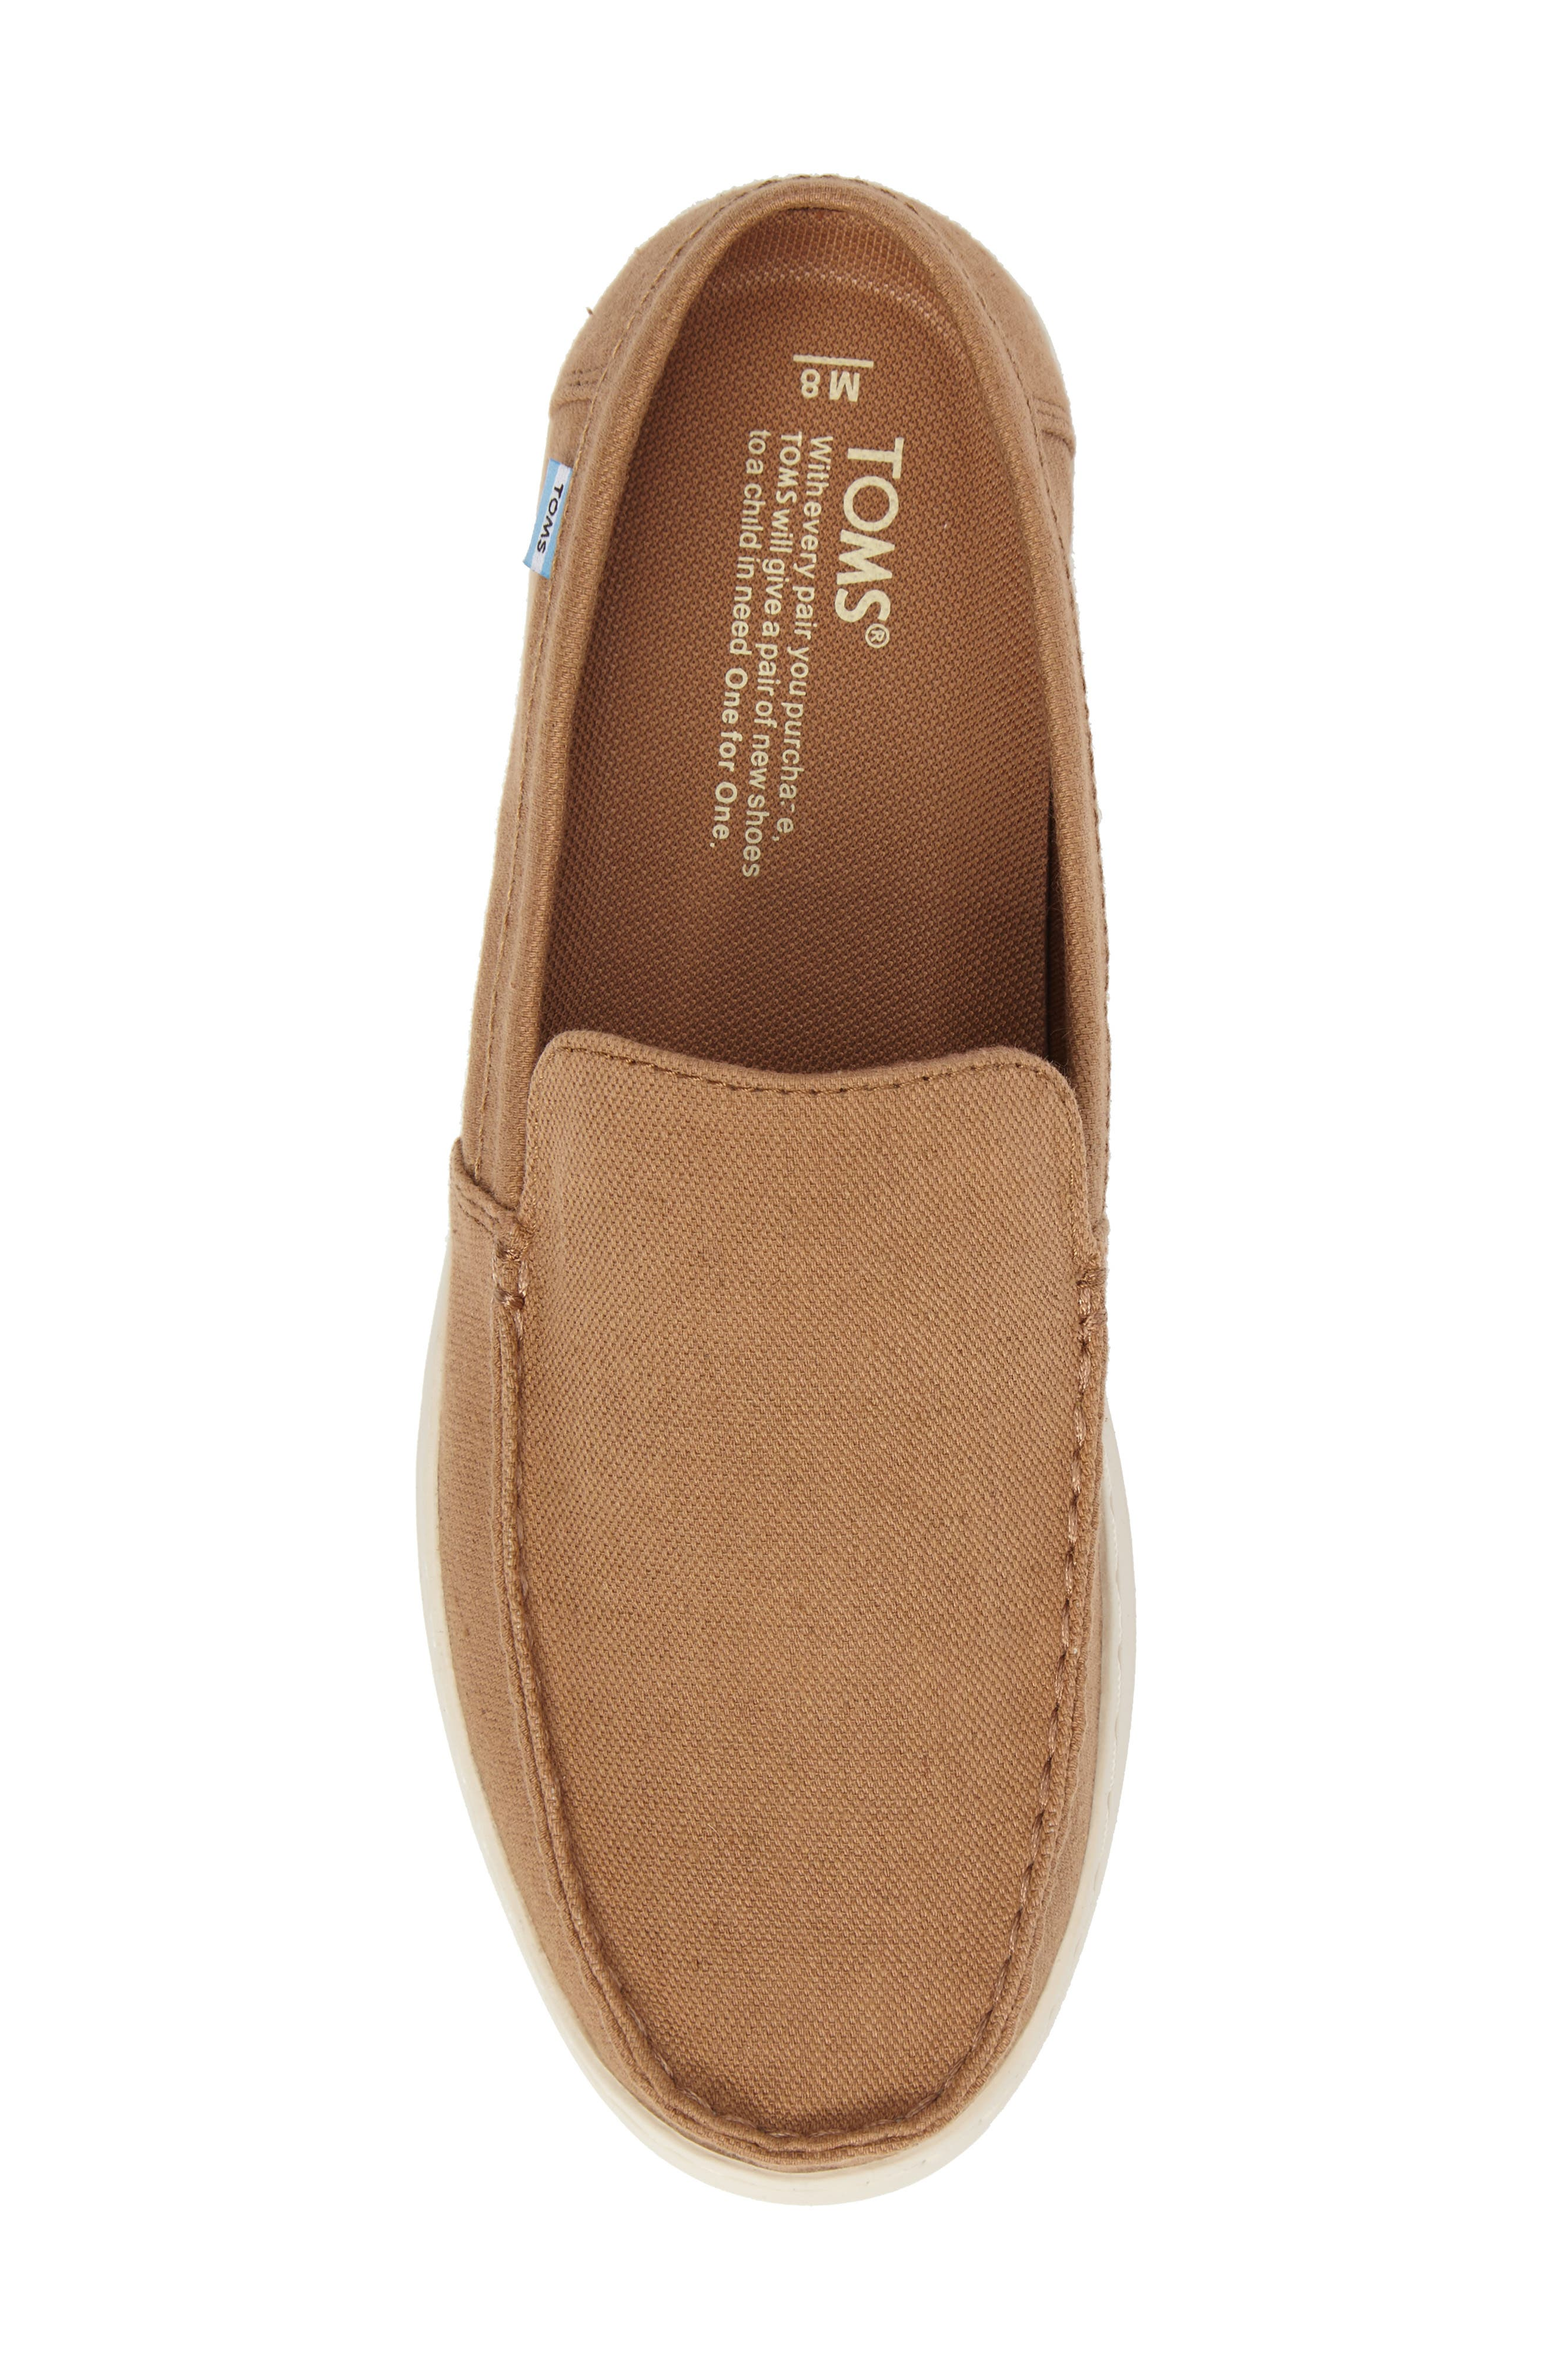 Aiden Slip-On Loafer,                             Alternate thumbnail 5, color,                             Toffee